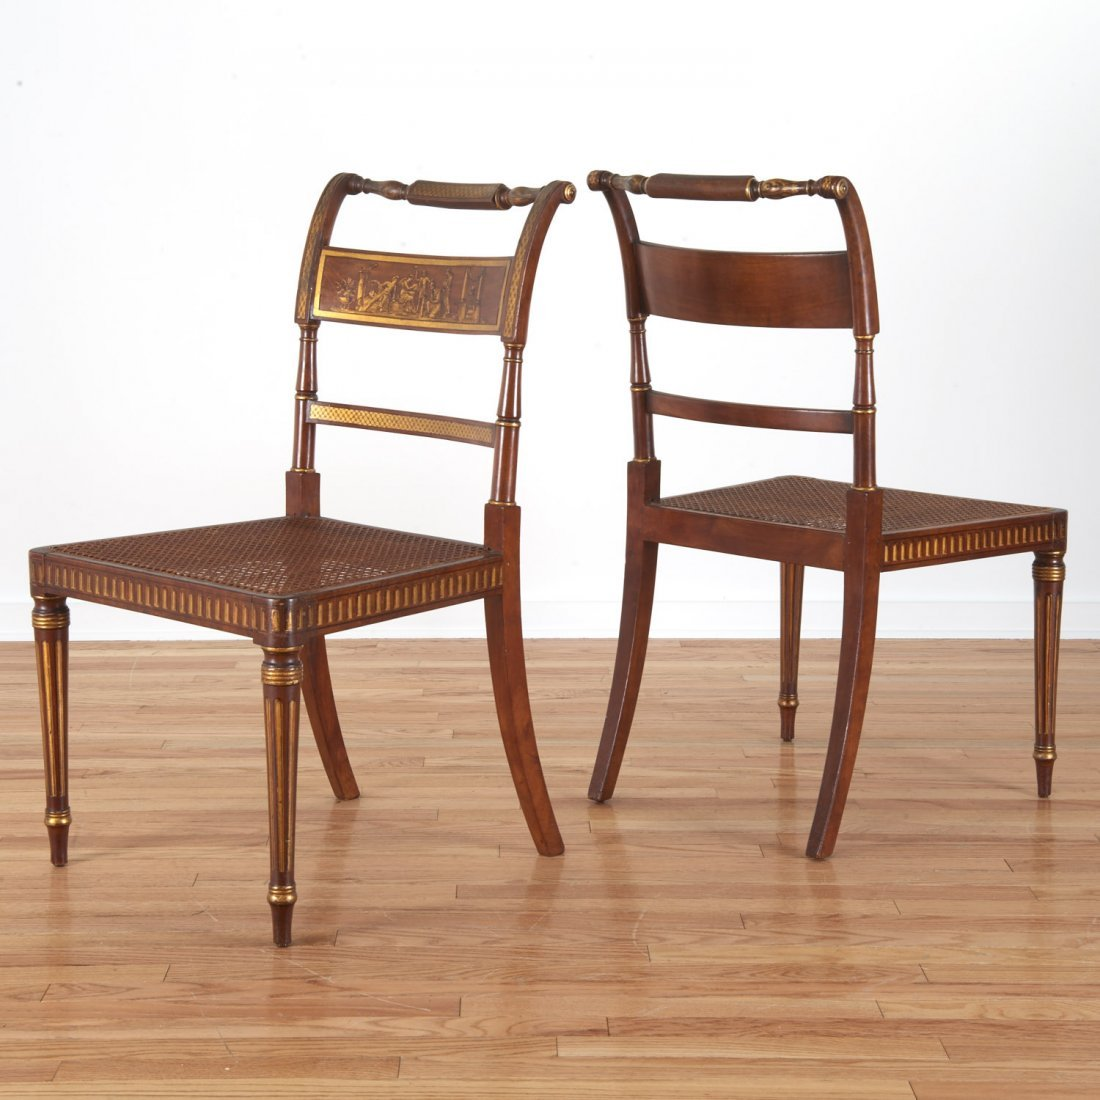 Fine set (6) American Federal gilt dining chairs - 2